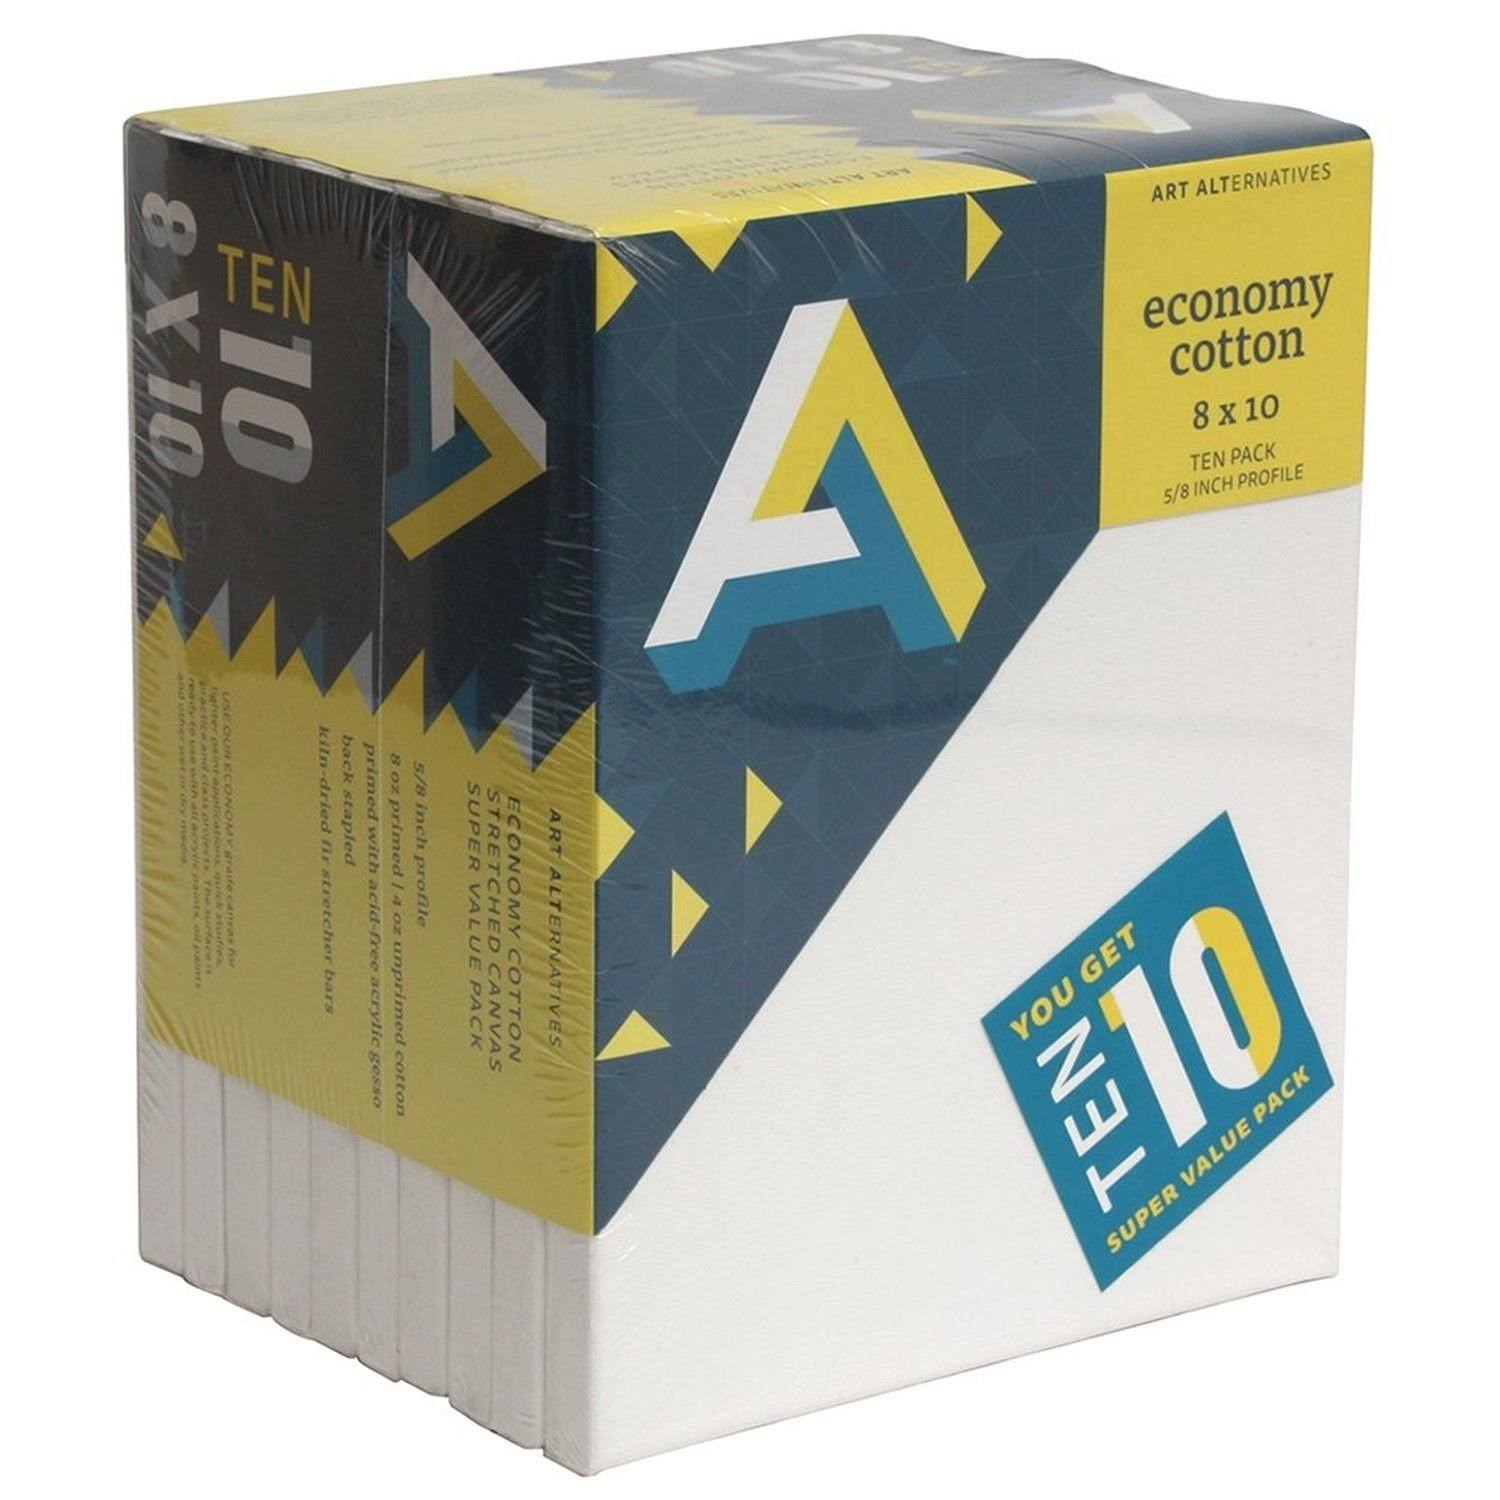 Art Alternatives Economy Super Value Canvas - 10 Pack, 8 x 10